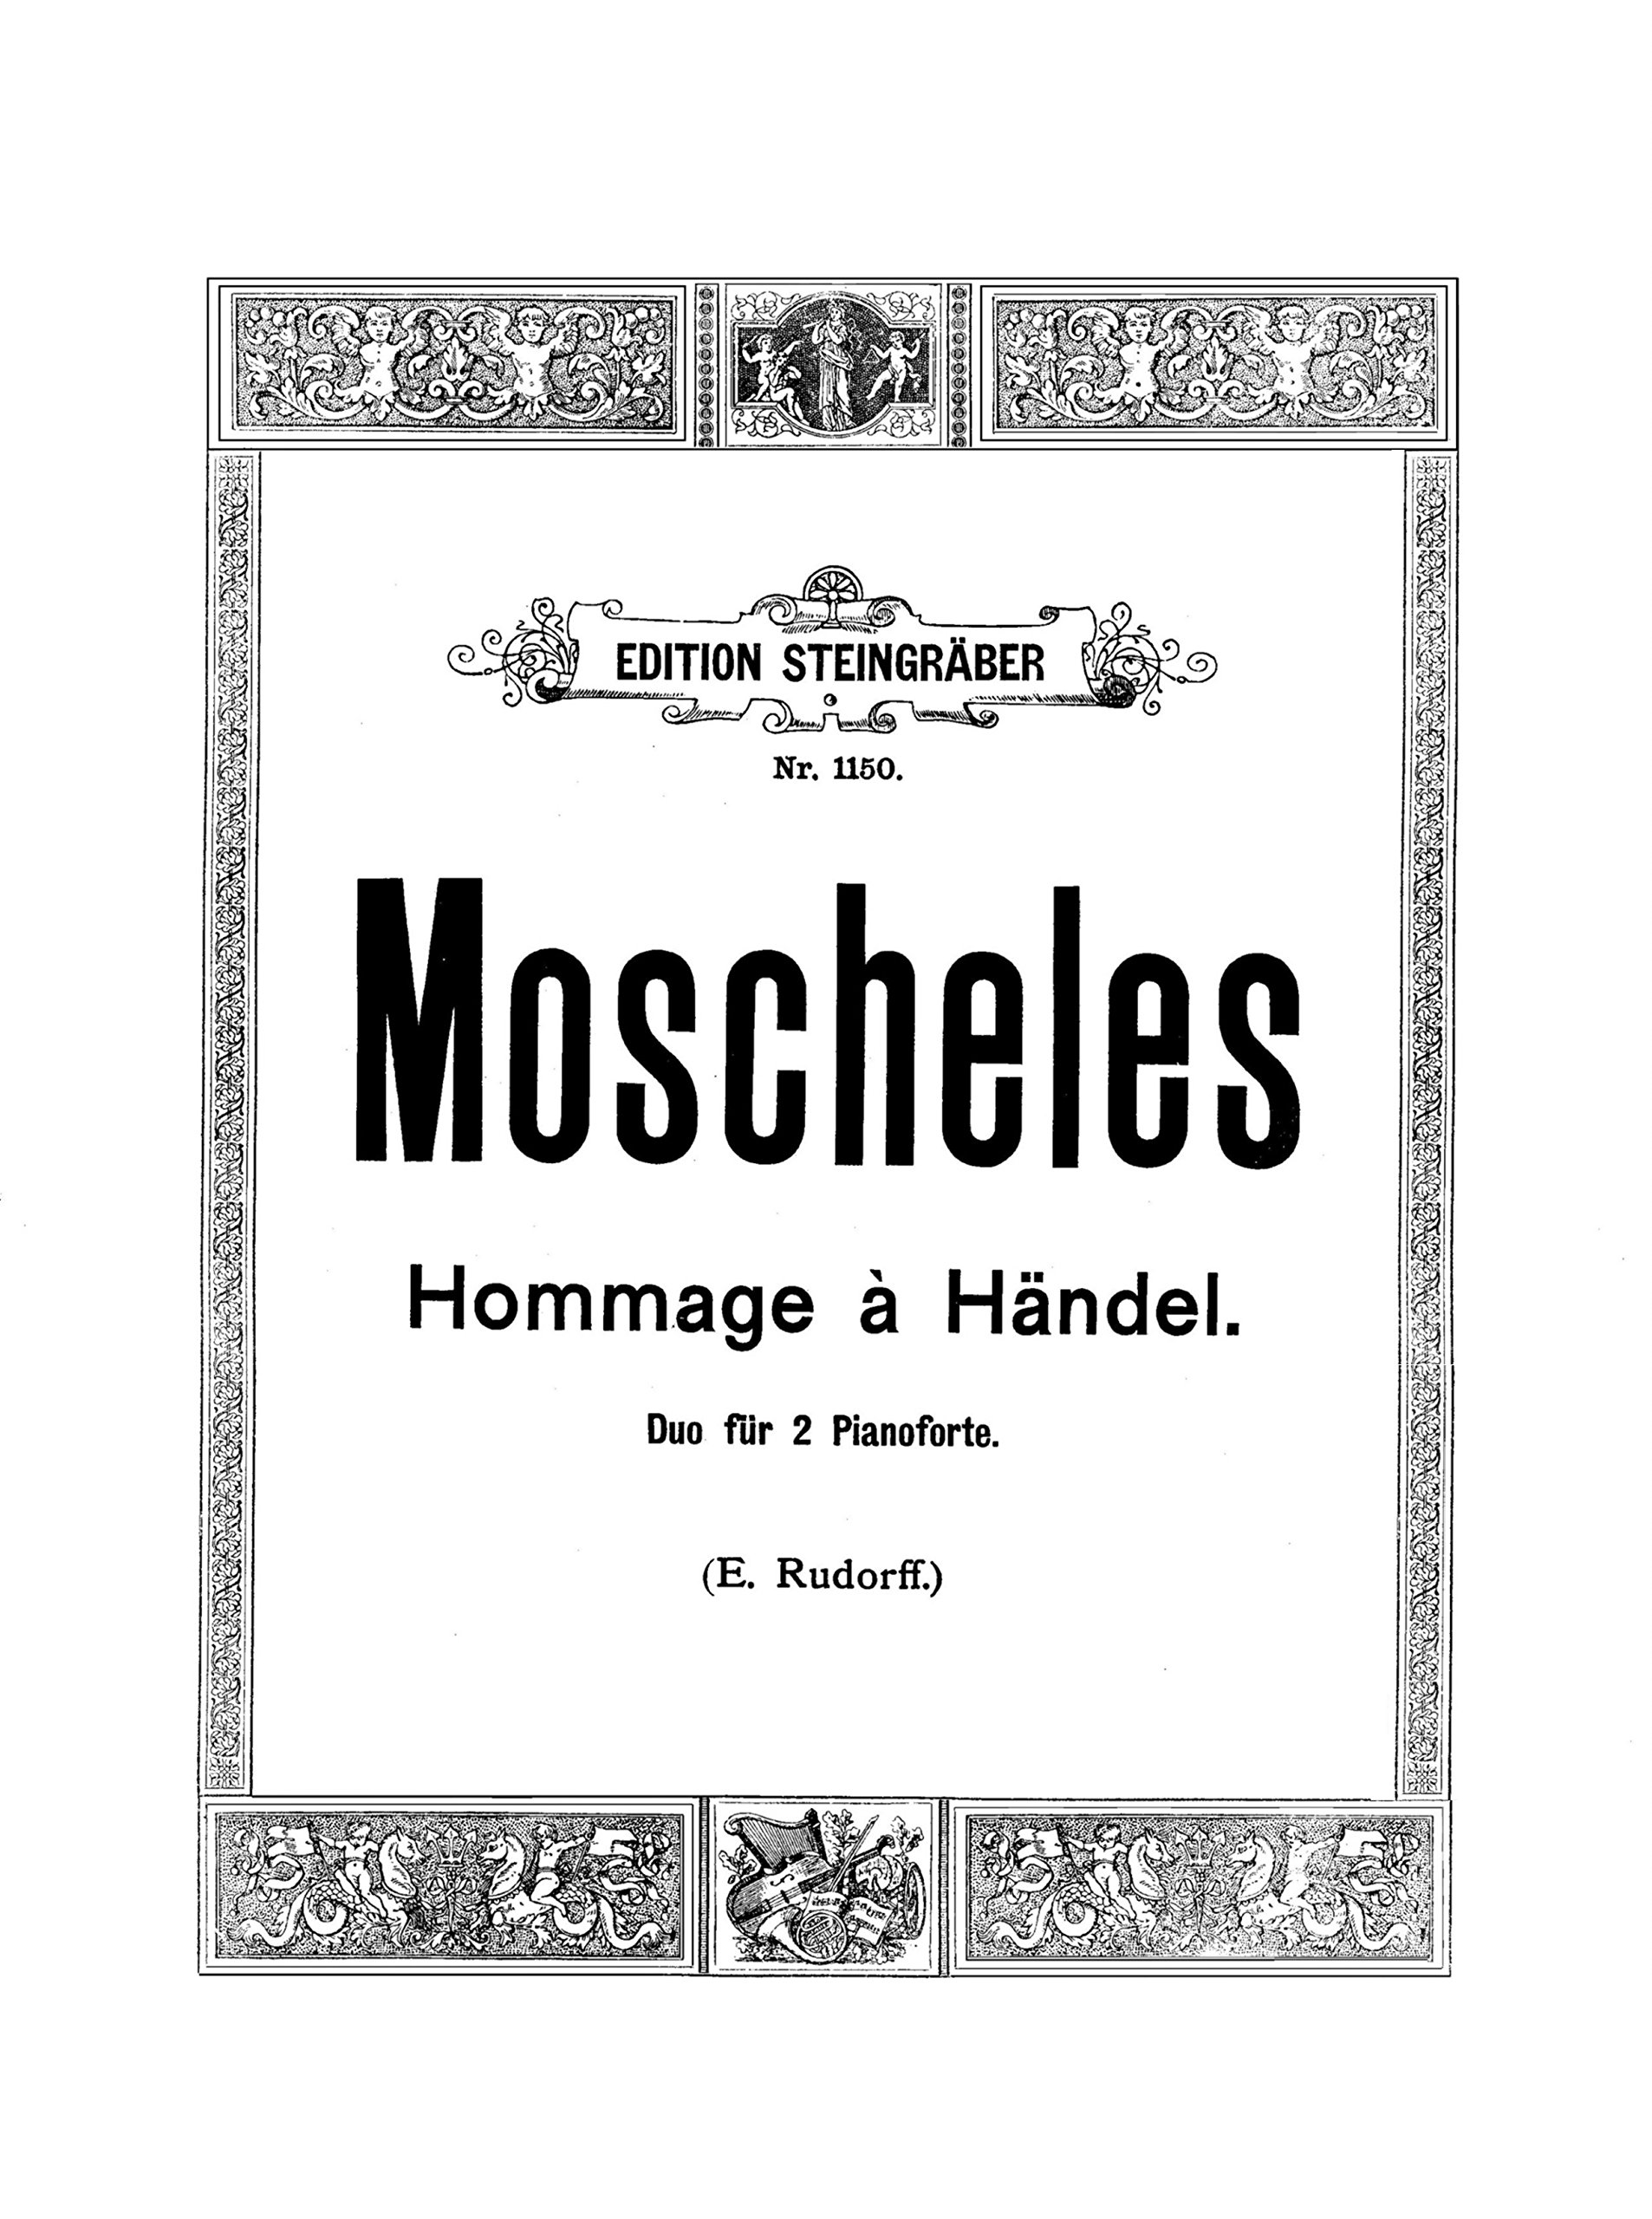 Read Online Hommage a Handel, Op.92 by Ignaz Moscheles, Duo fur 2 Pianoforte (Homage to Handel, 2 ianos) [Beautifully Re-Imaged from Original for Greater Clarity. Student Loose Leaf Facsimile Edition. 2017] ebook